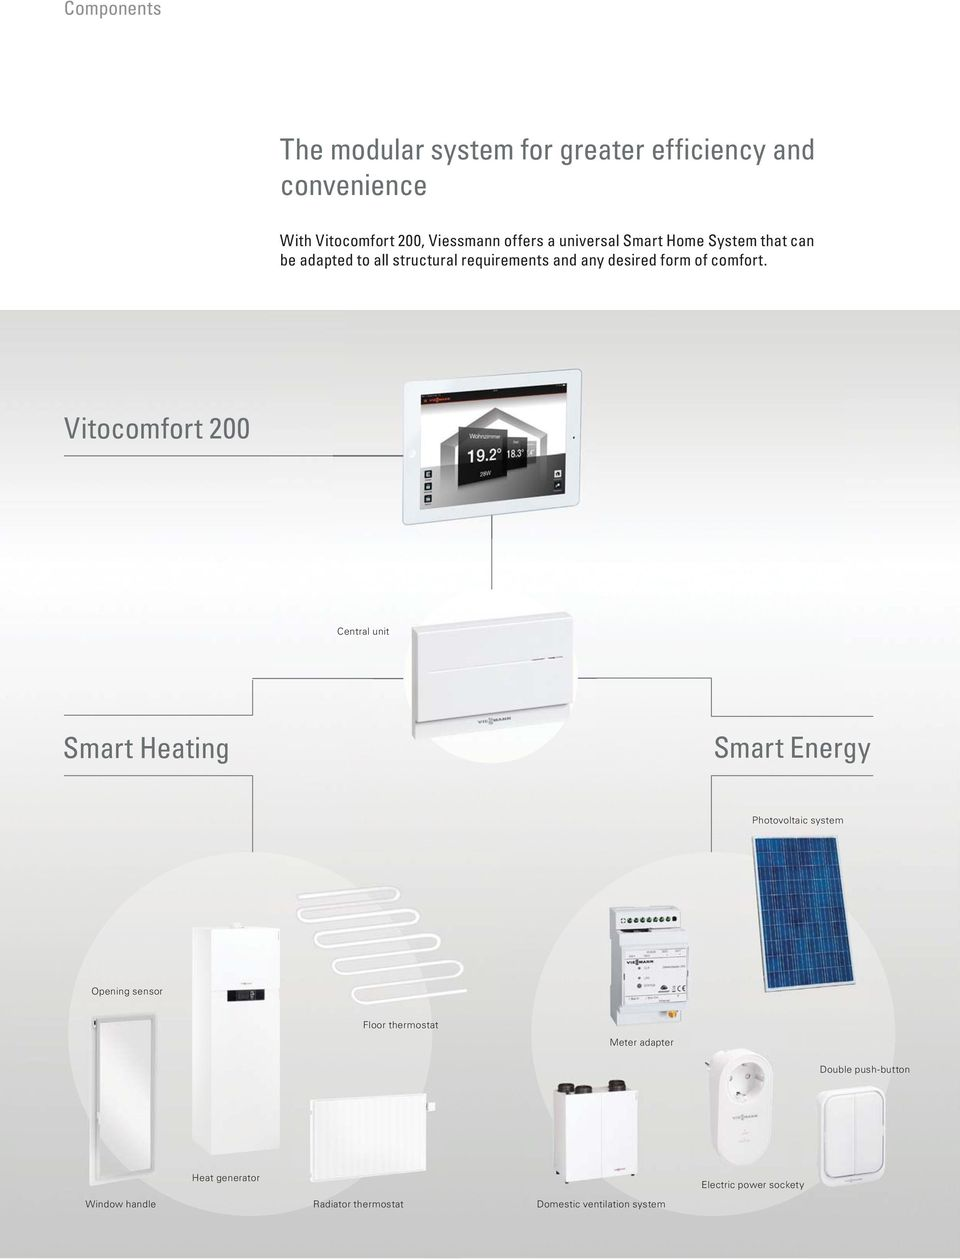 Vitocomfort 200 Central unit Smart Heating Smart Energy Photovoltaic system Opening sensor Floor thermostat Meter